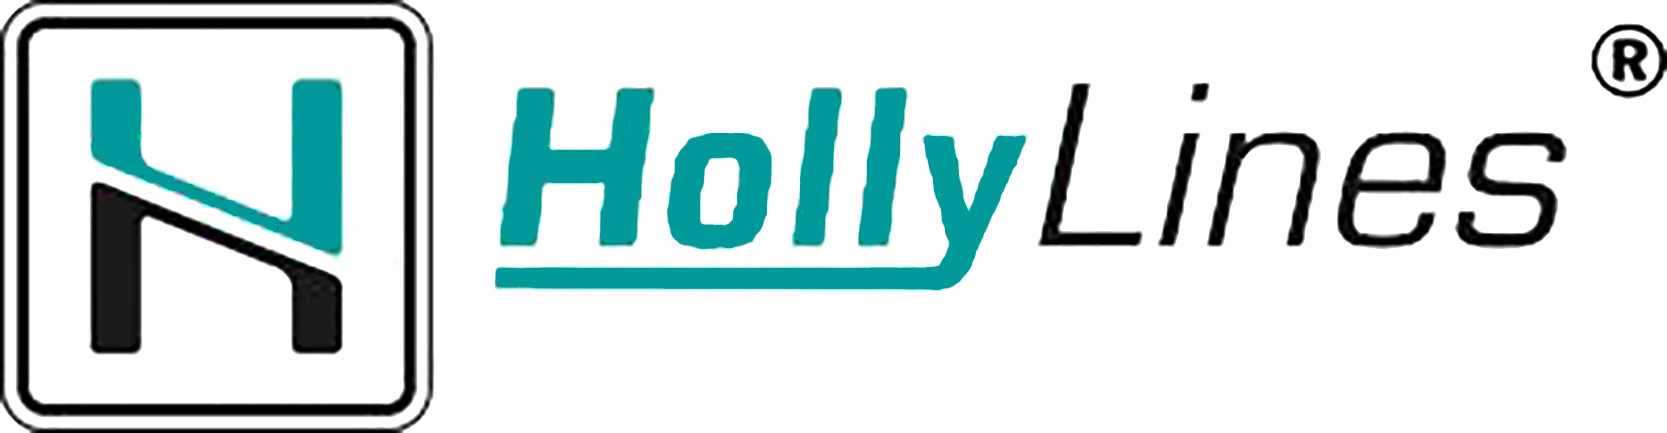 shophollylines.com